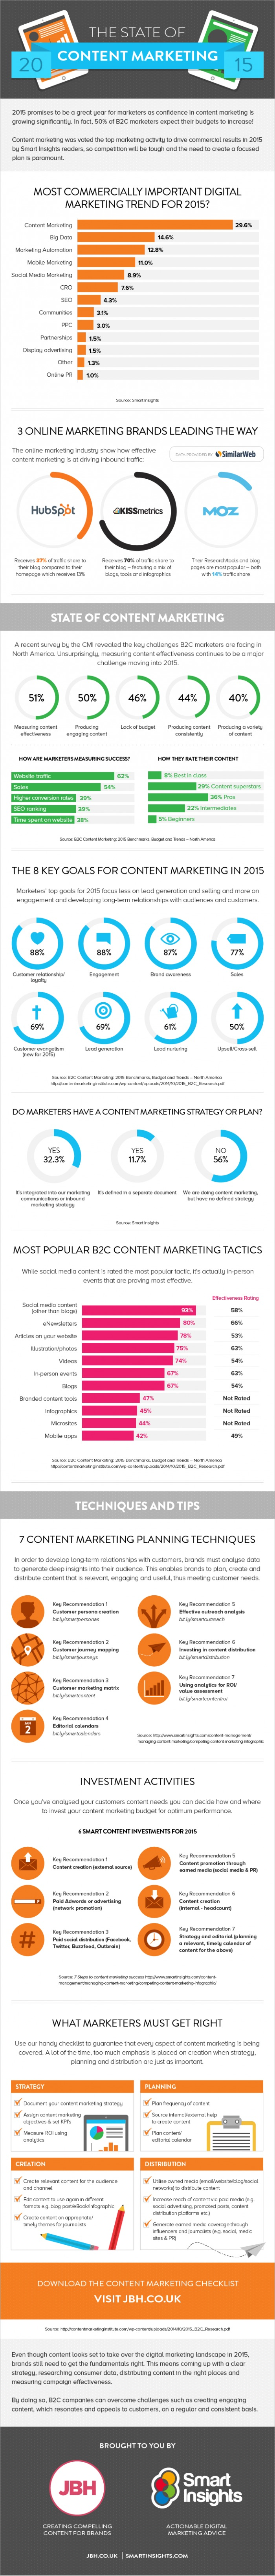 content-marketing-2015